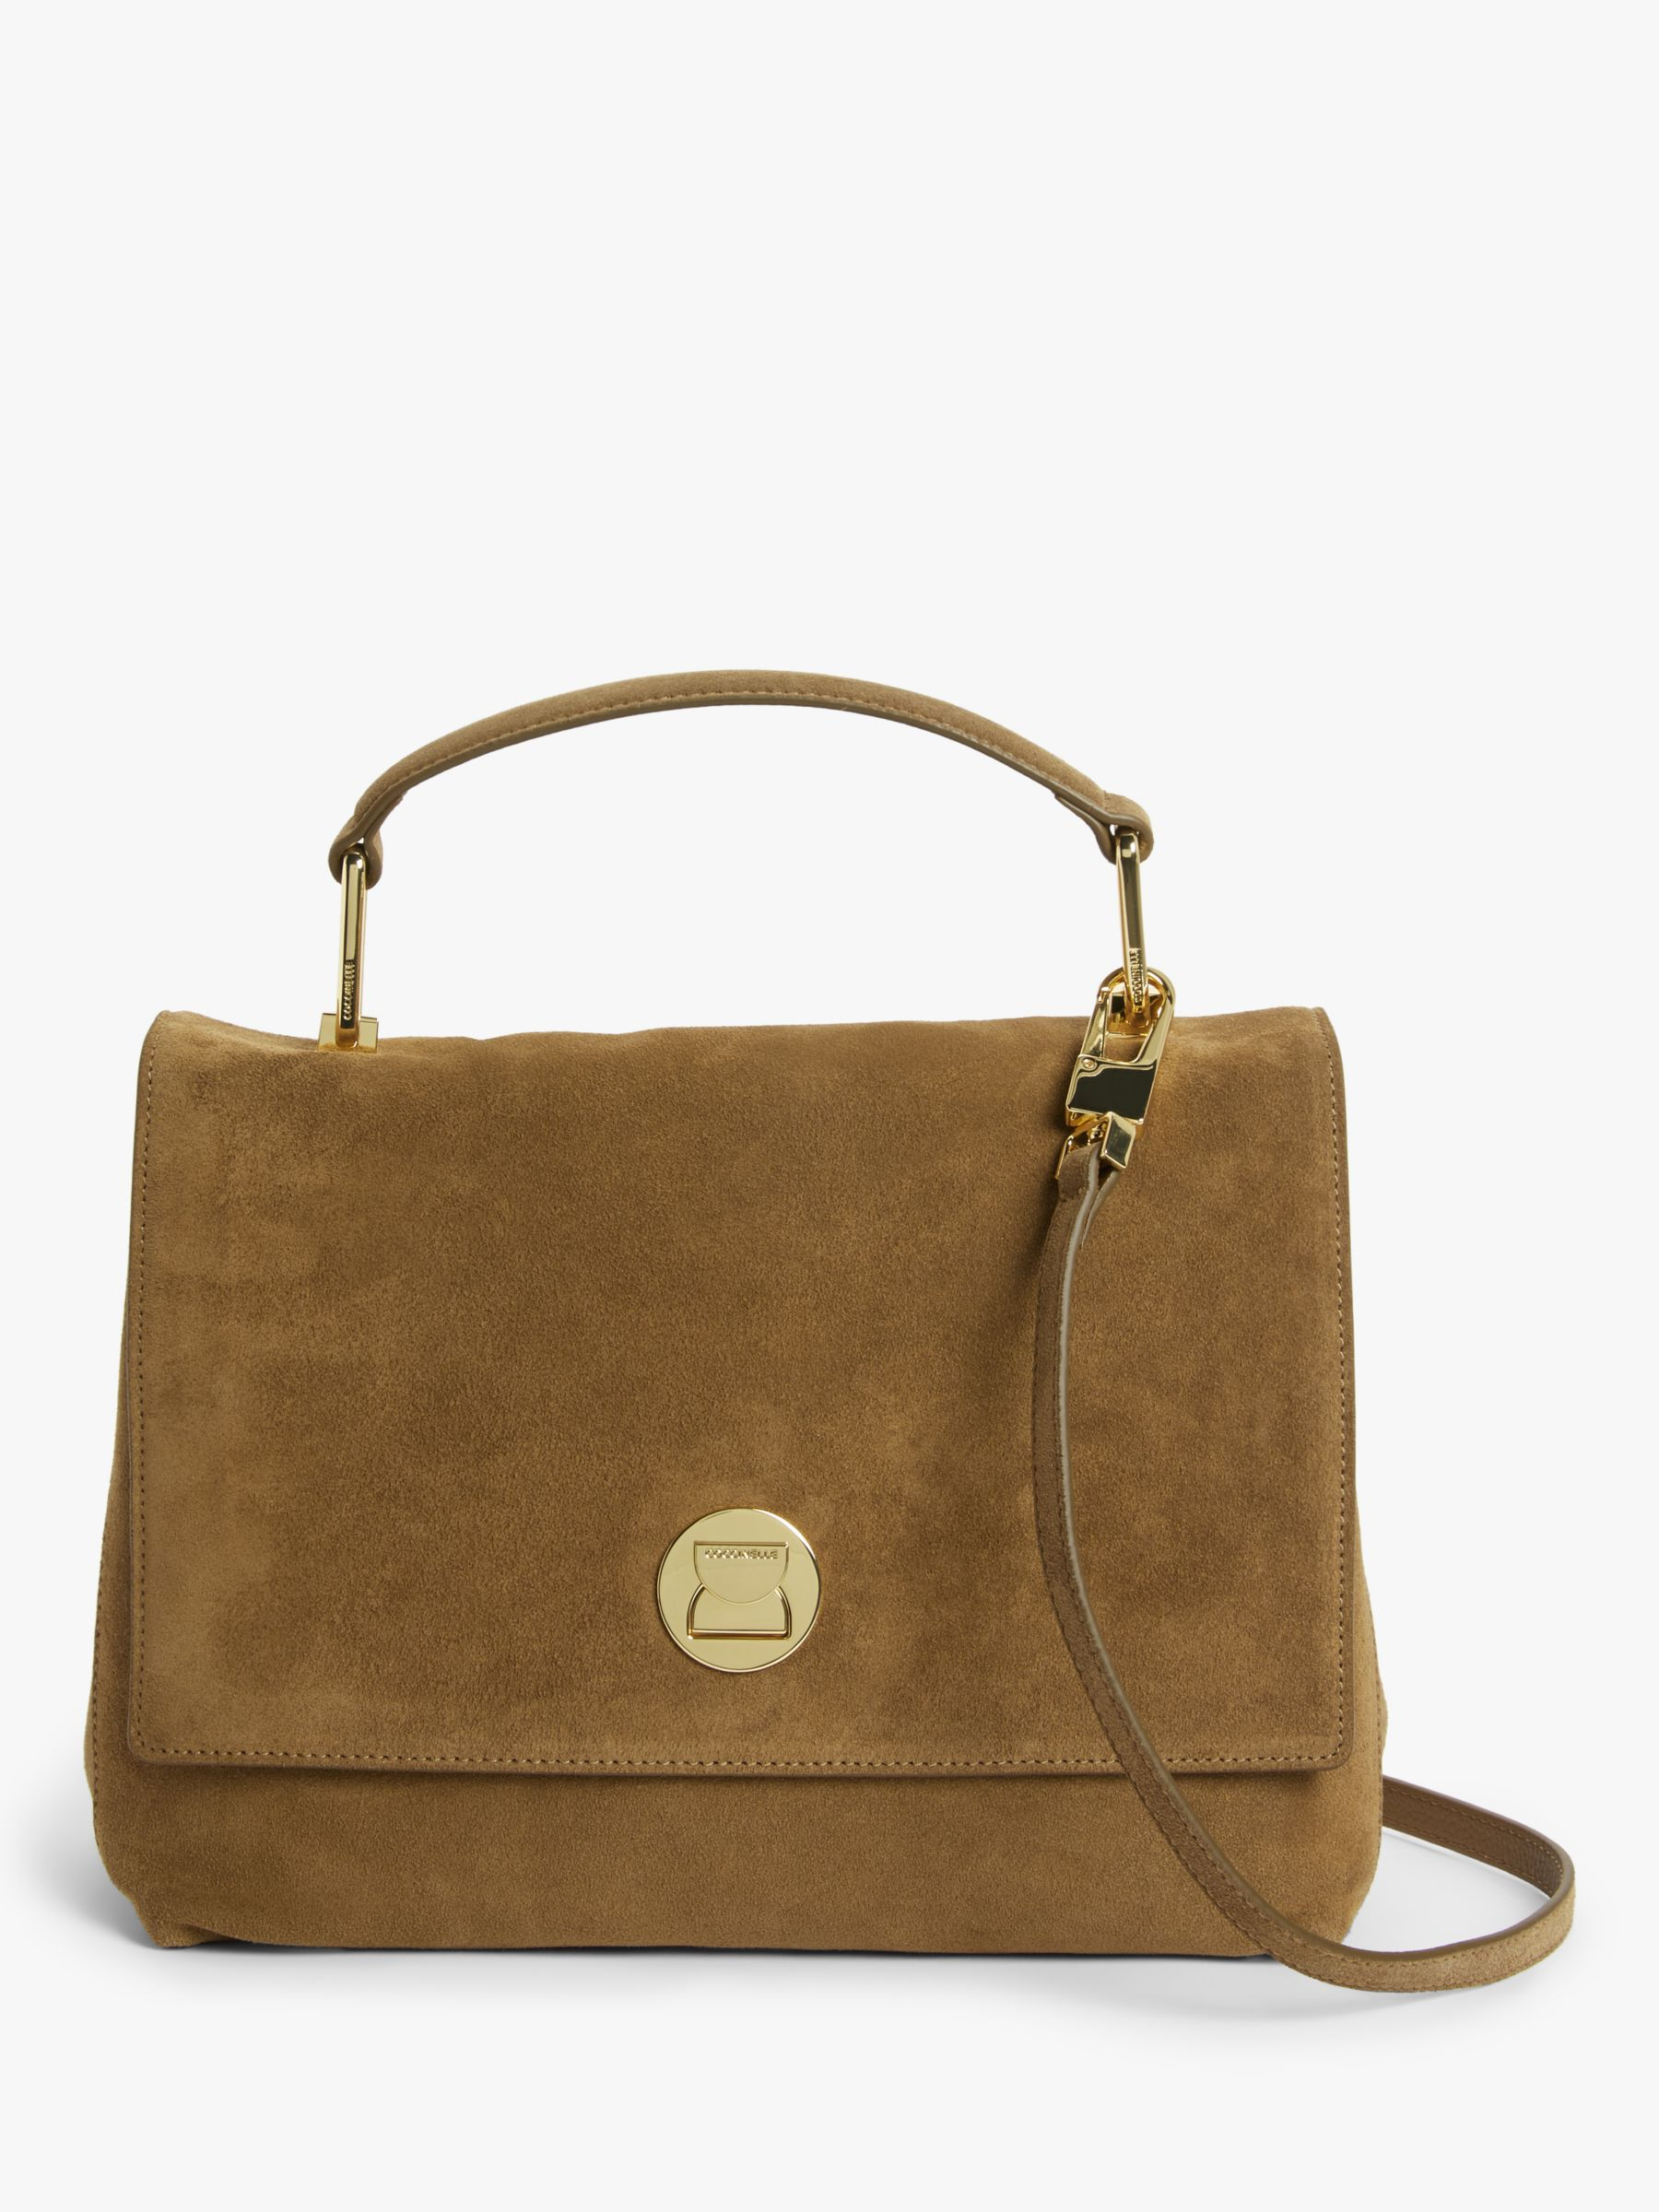 Coccinelle Coccinelle Liya Iconic Suede Shoulder Bag